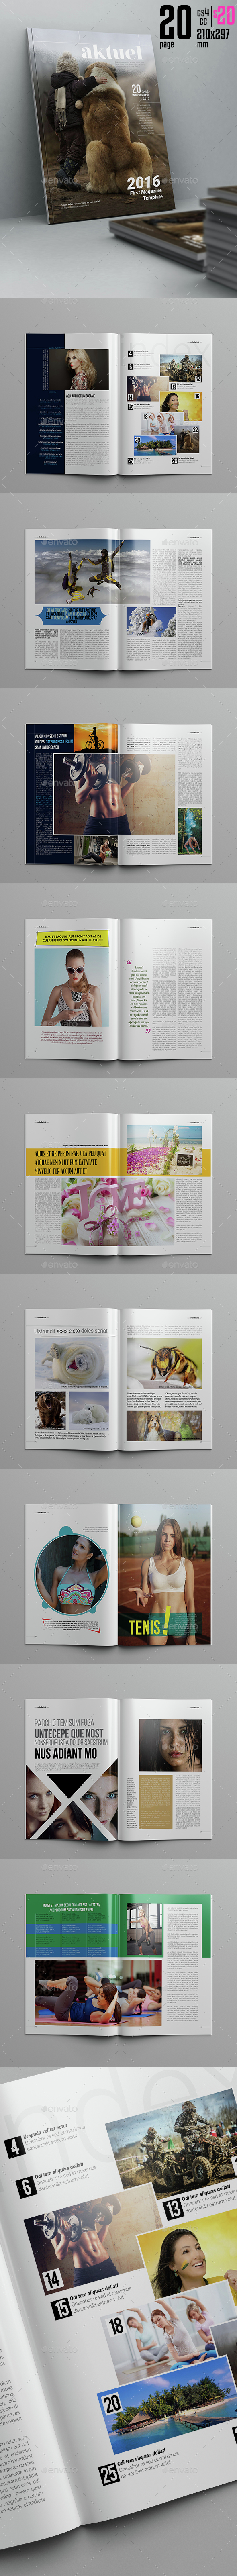 Aktuel Magazine Template 20 Page - Magazines Print Templates